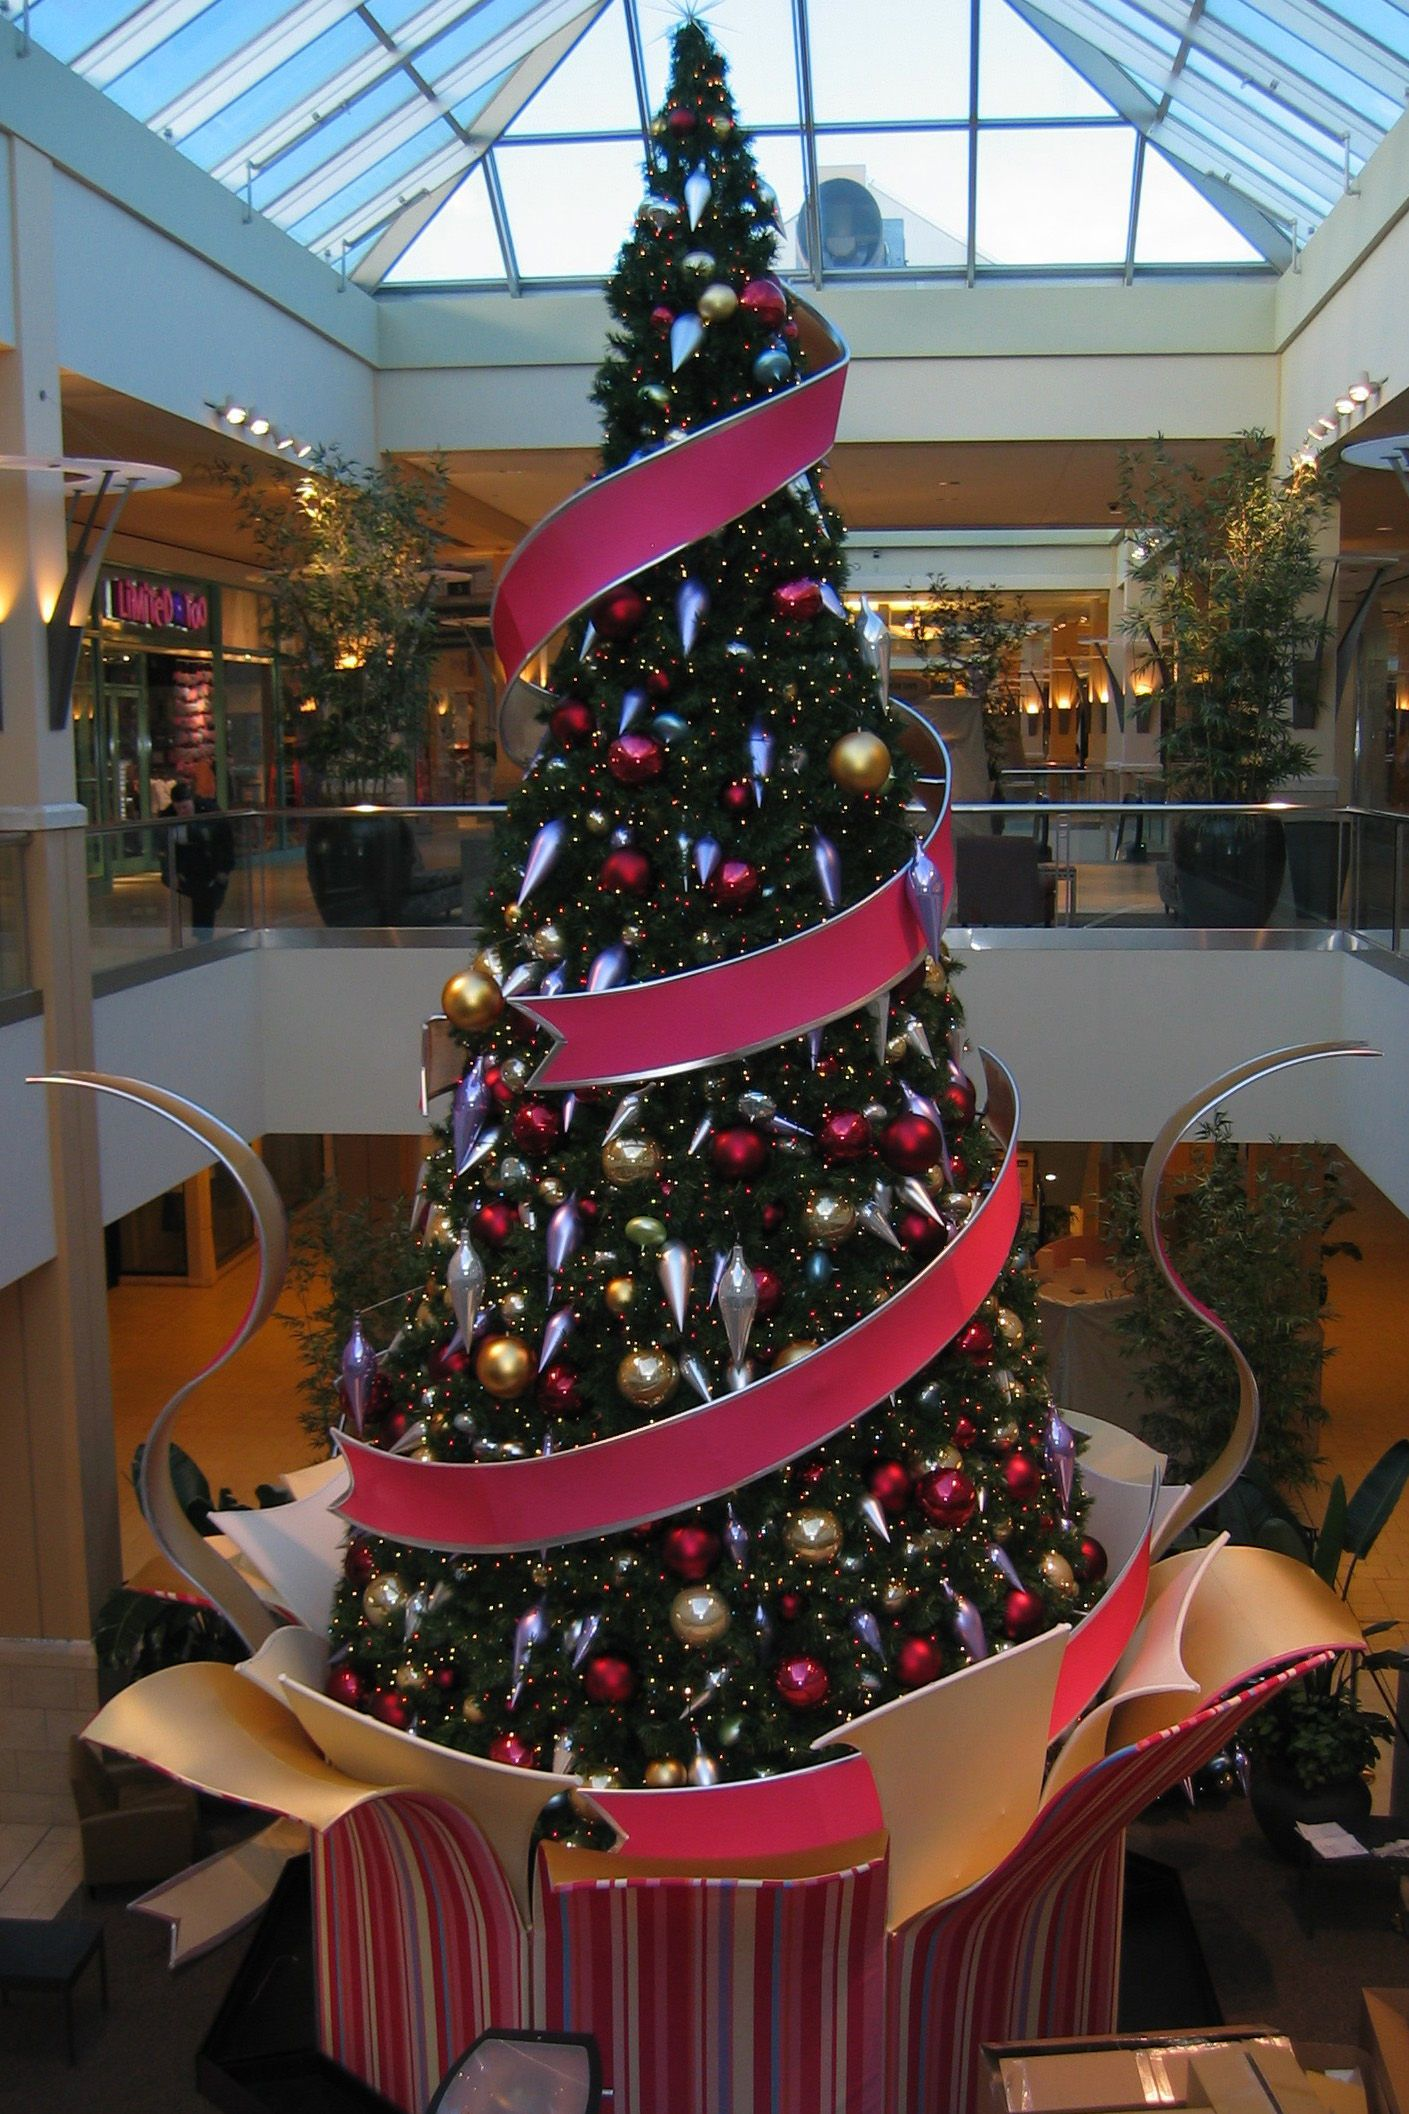 This Christmas tree in this shopping mall is created with tension fabric!  Both the gift